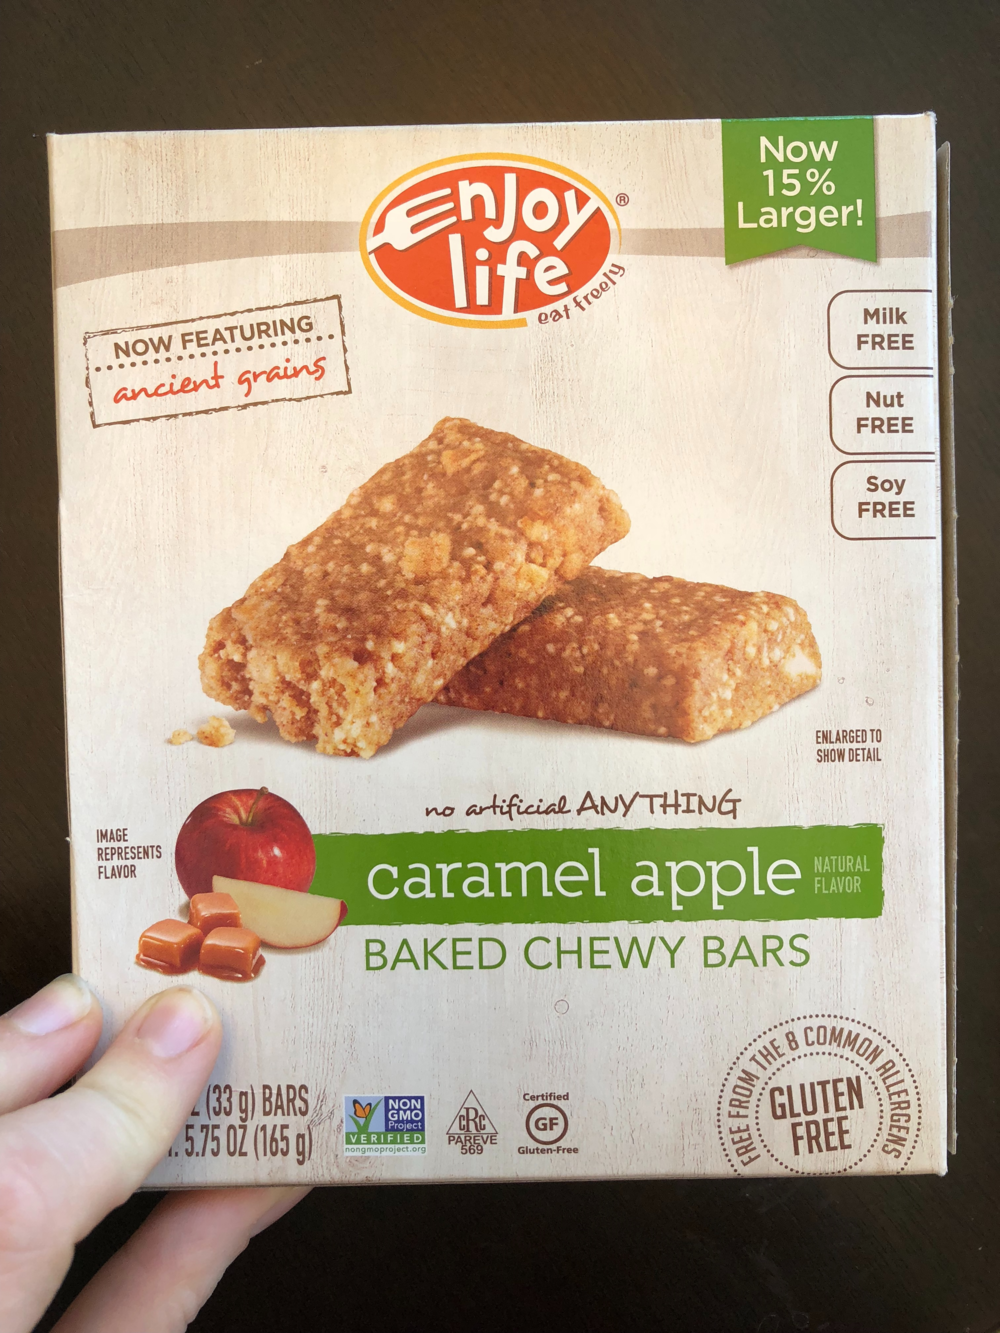 Not an ad. We just really love and trust their products. These granola bars are really good!